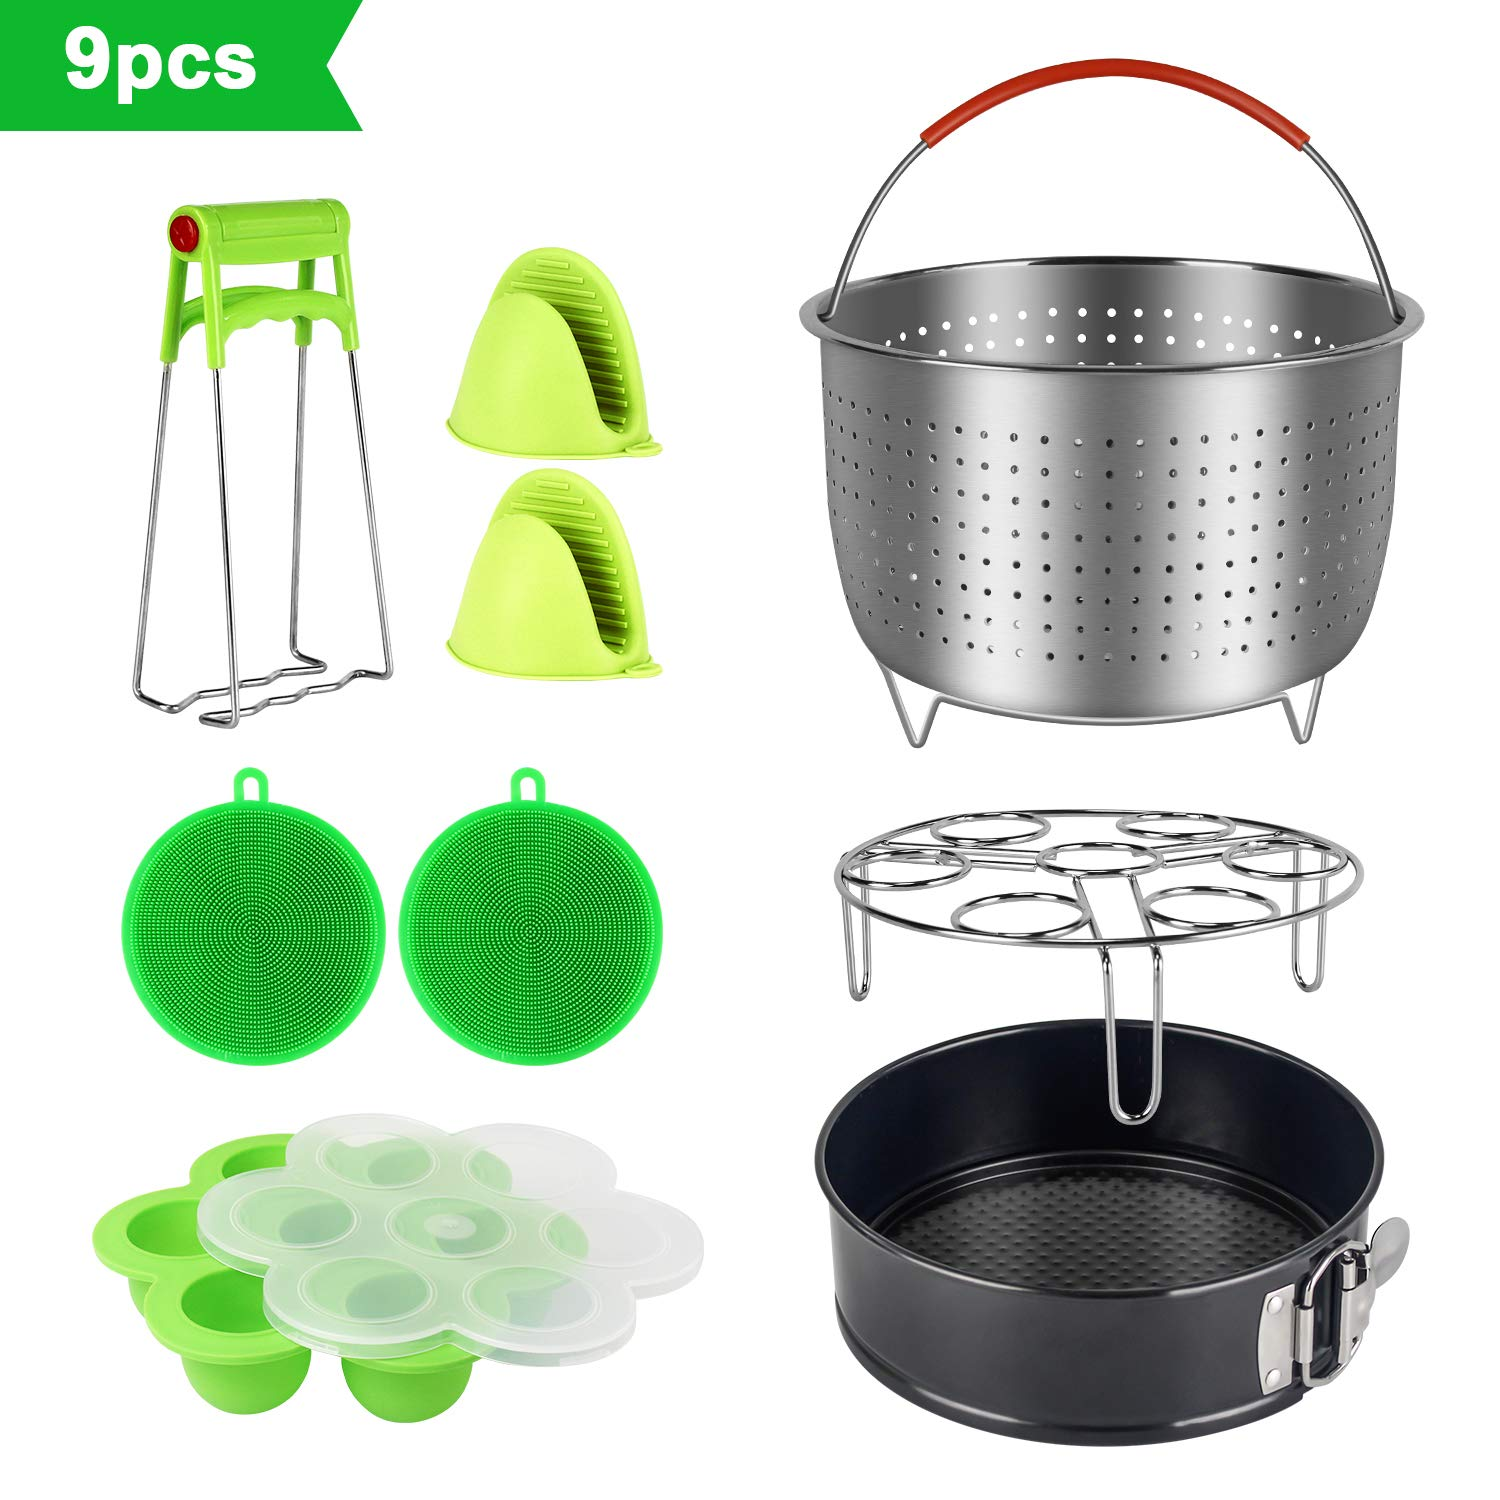 9 Piece Accessories Kits for Instant Pot 6, 8 Qt - With Large Stainless Steel Steamer Basket, Non-Stick Springform Pan, Egg Rack, Egg Bites Mold, Oven Mitts, Bowl Clip and Silicone Scrub Pad SySrion